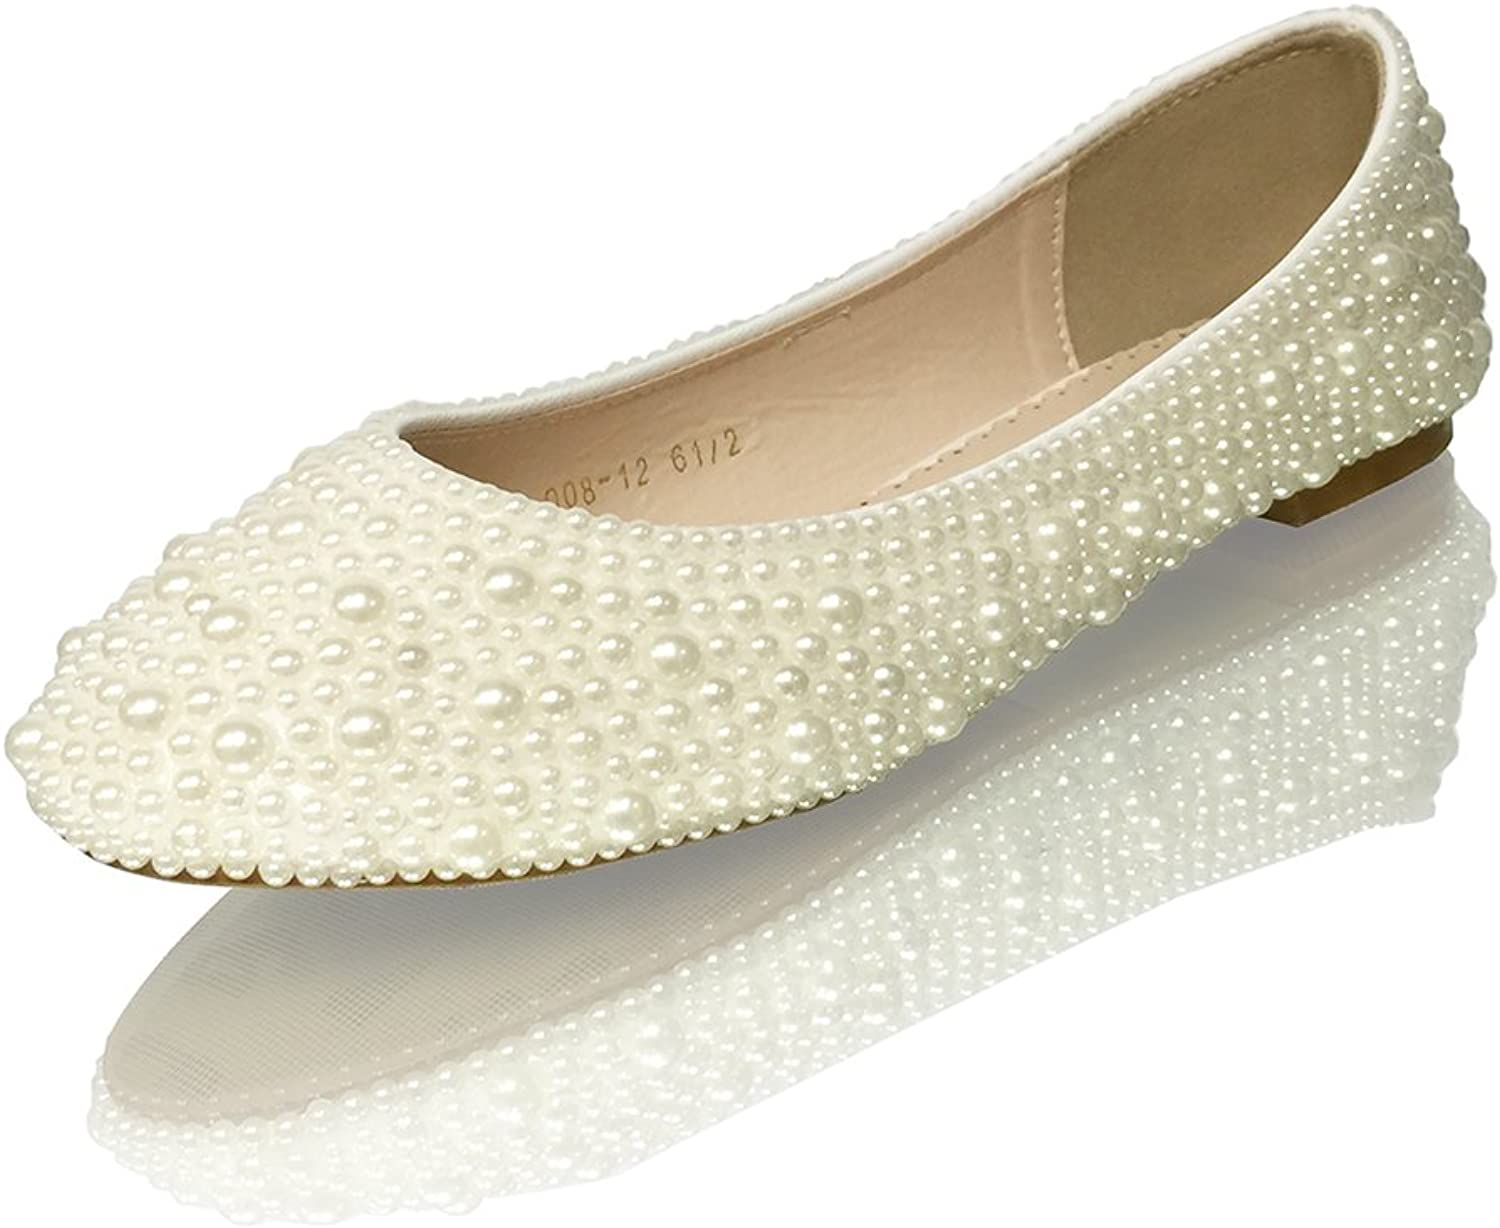 Marc Defang New York Women's Handmade Ivory Mixed Pearl Closed Toe Wedding Bridal Flats